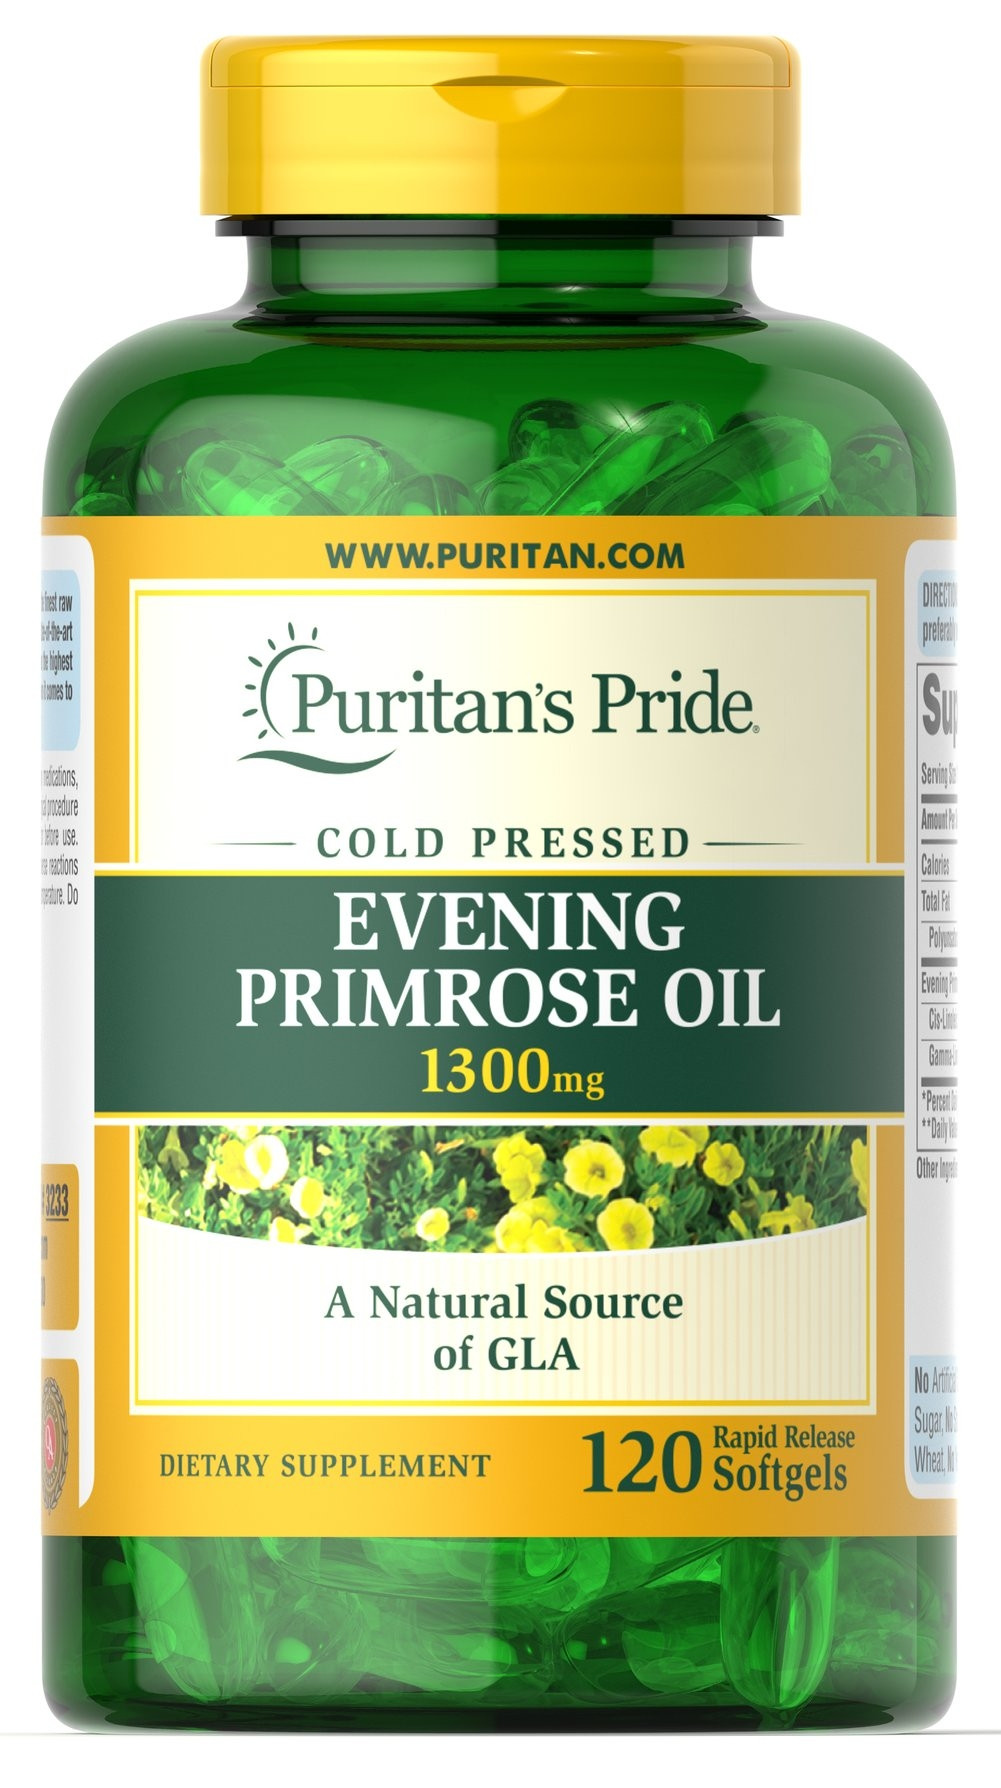 PURITAN'S PRIDE EVENING PRIMROSE OIL 1300MG 120CAP